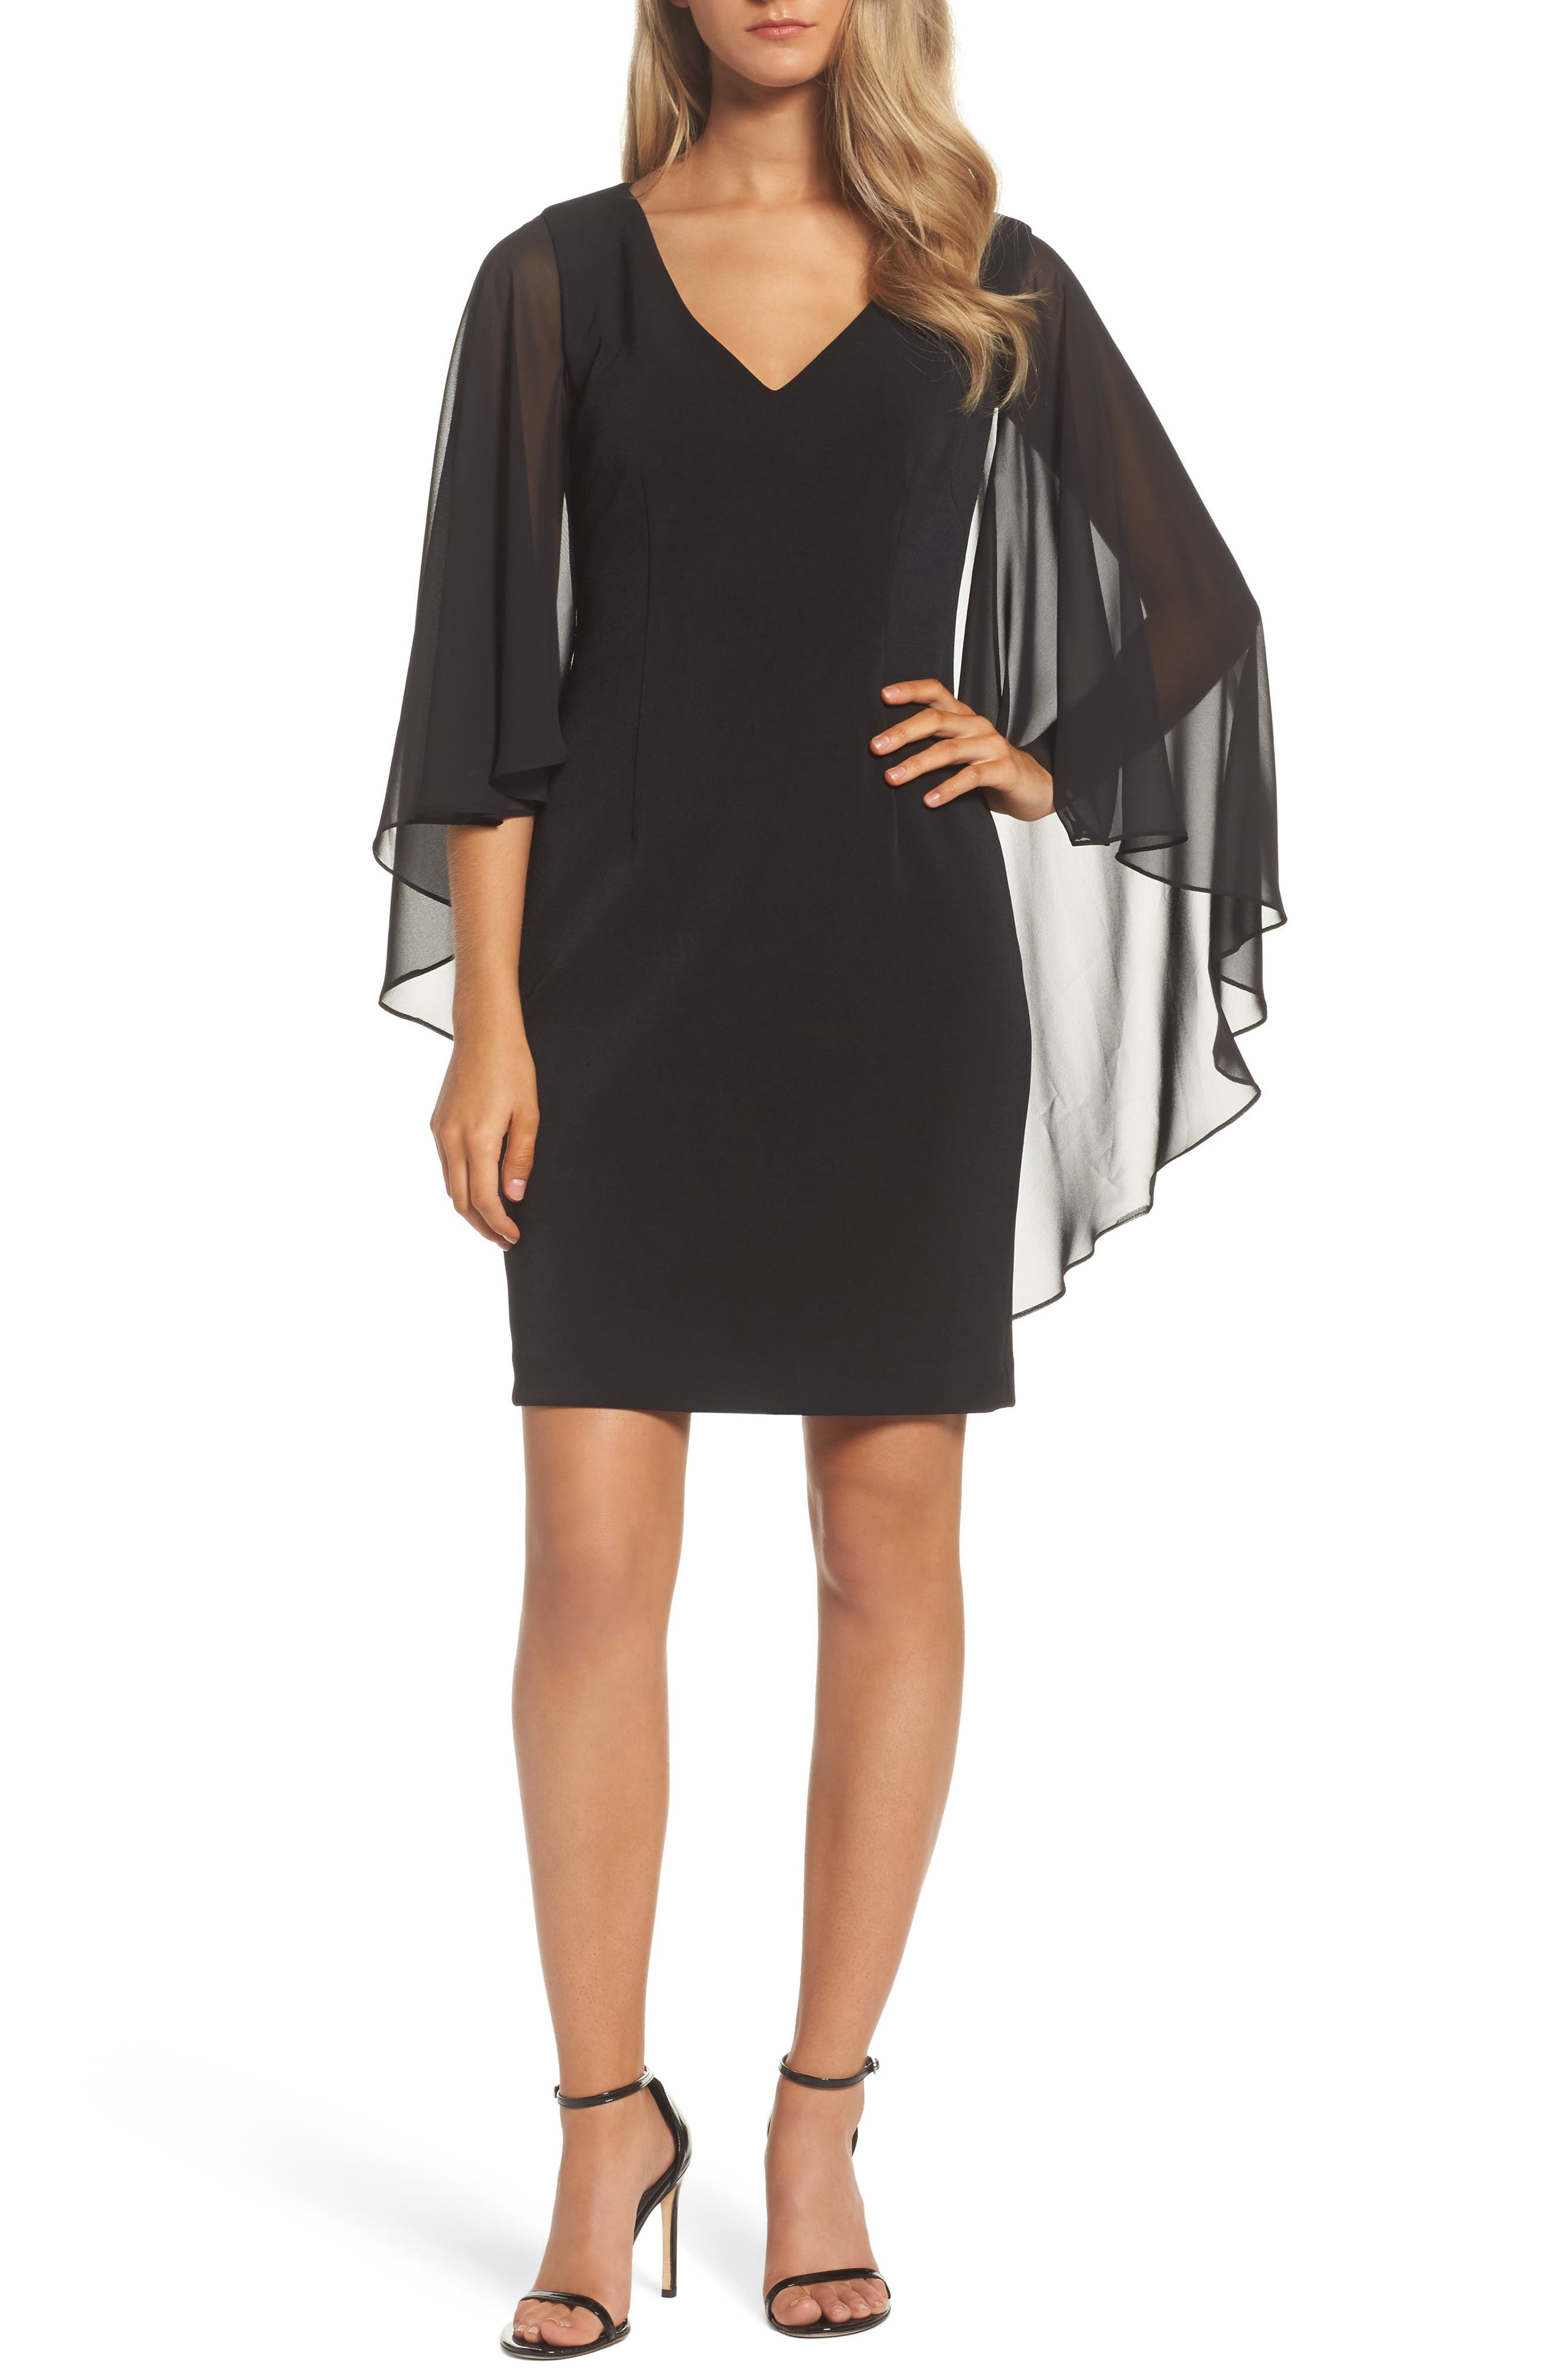 Vince Camuto Cape Dress